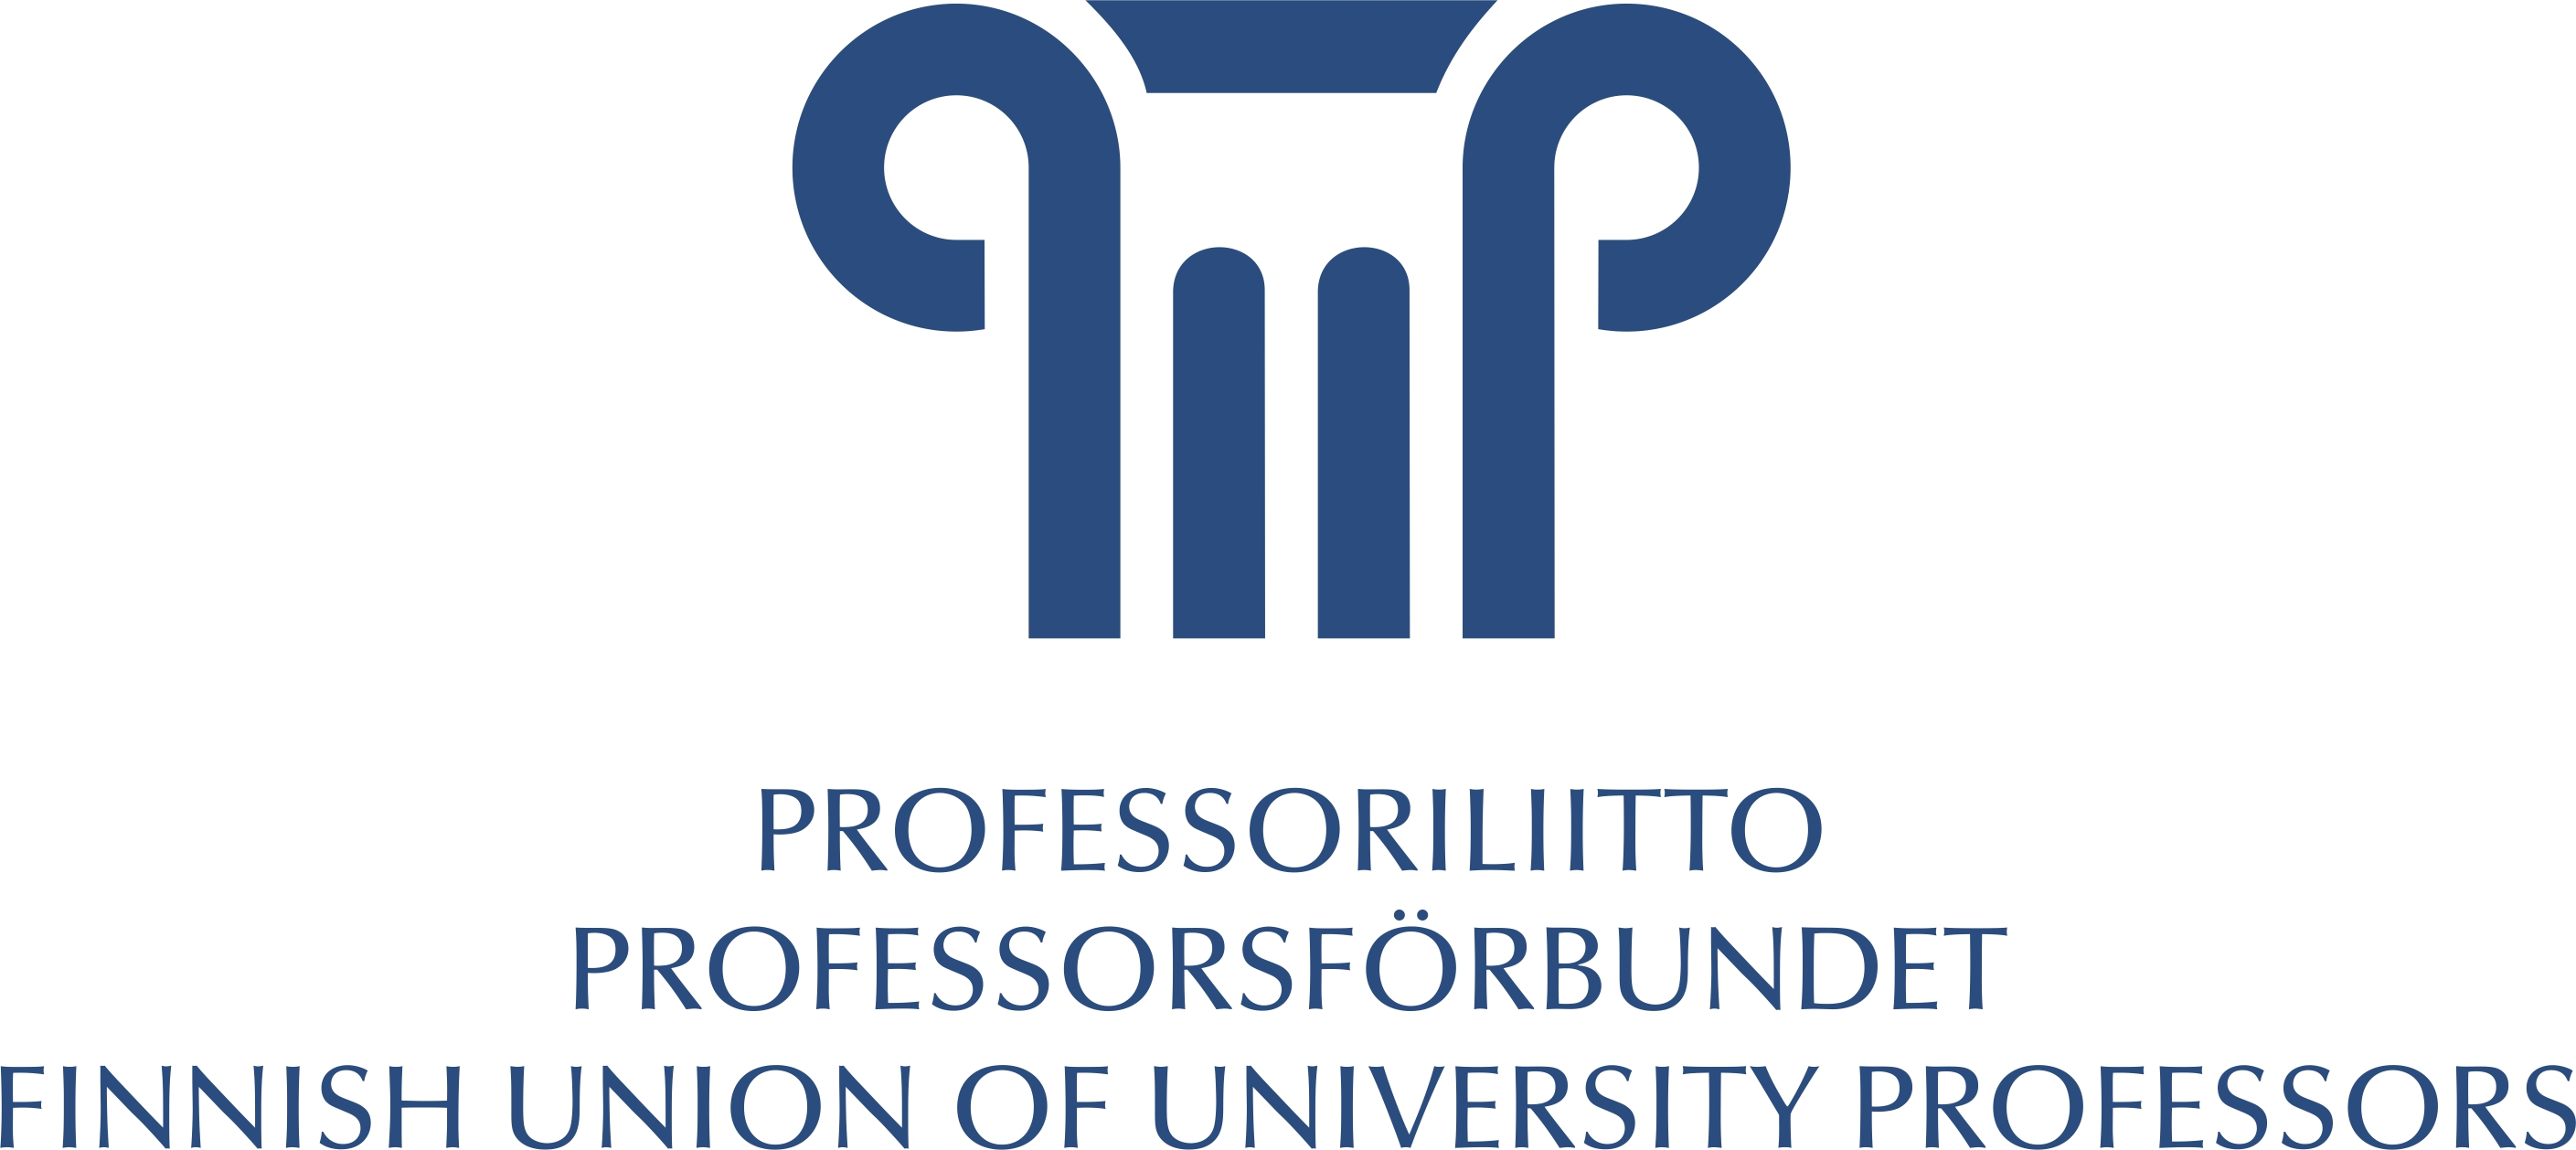 Professoriliitto